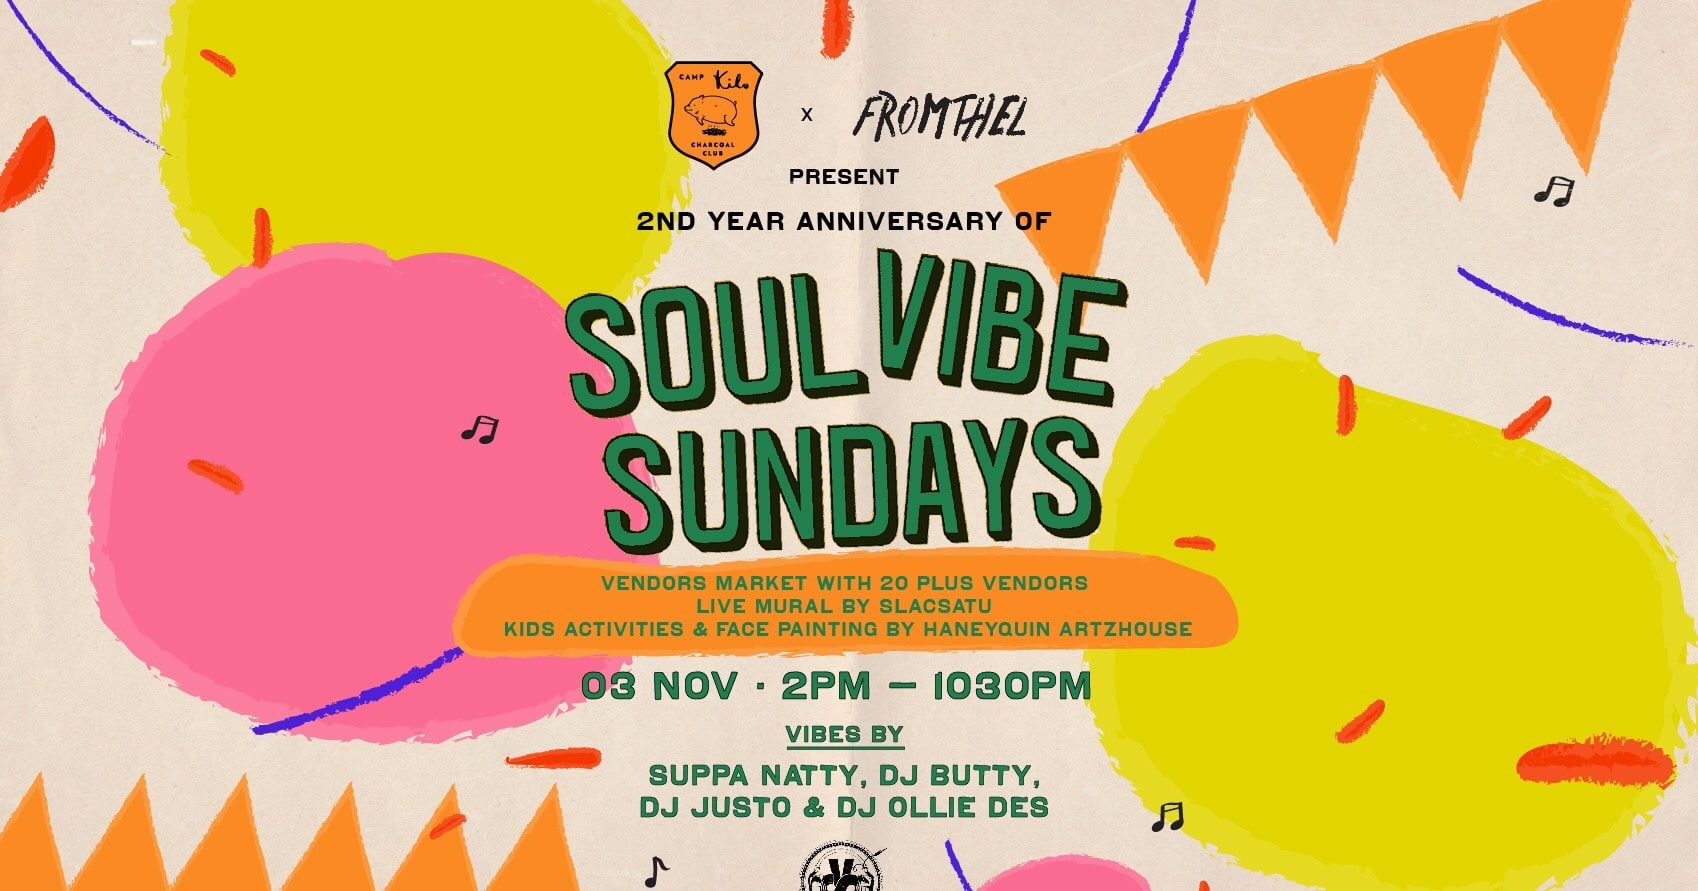 Soul Vibe Sunday Weekend Event in Singapore